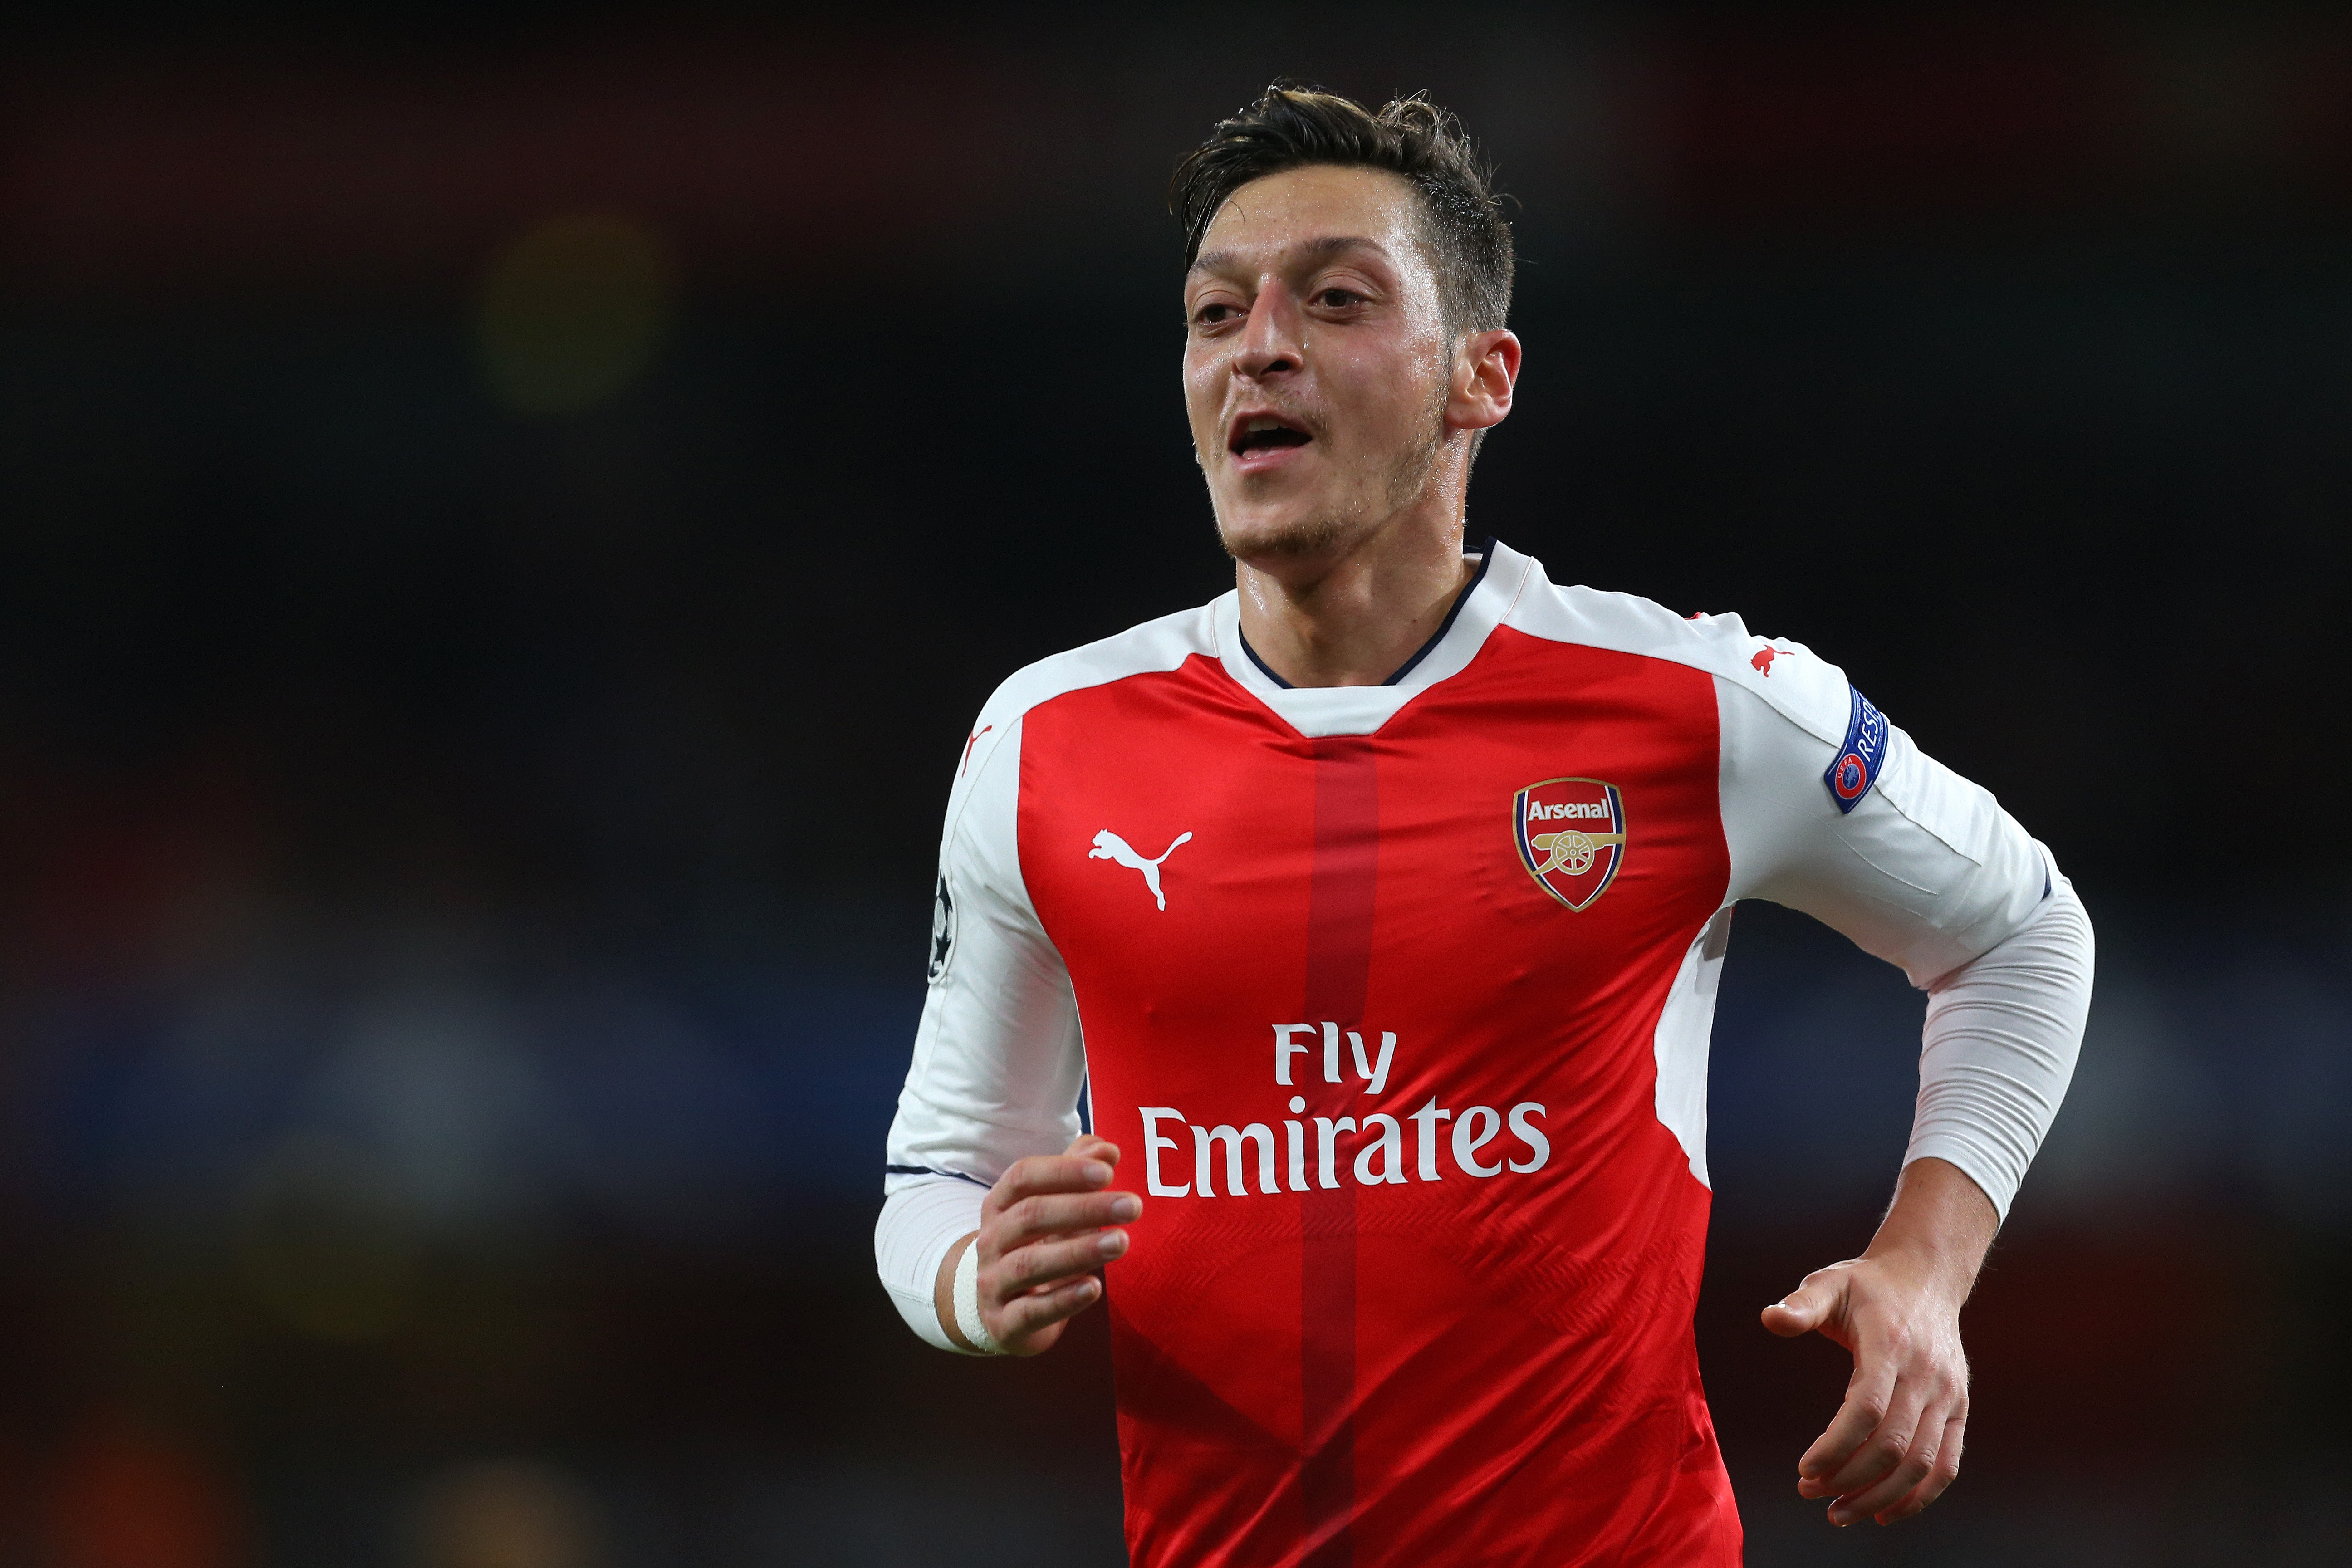 Arsenal manager Arsene Wenger admits that Mesut Ozil used to be lazy